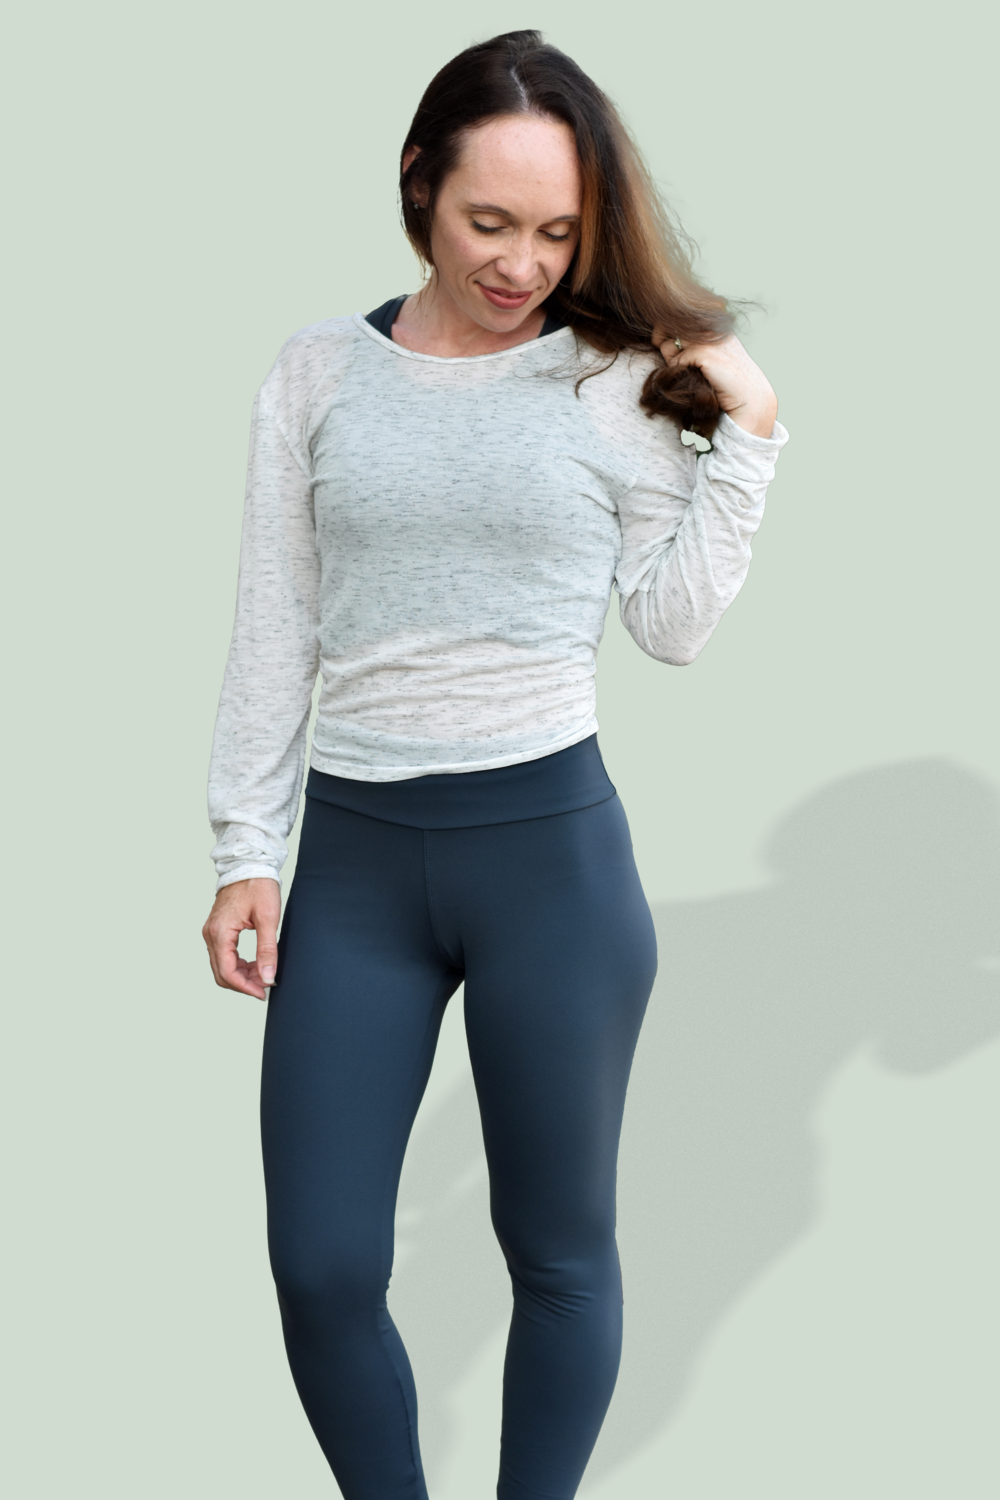 GRE - Elevate Crop Top and Overlay